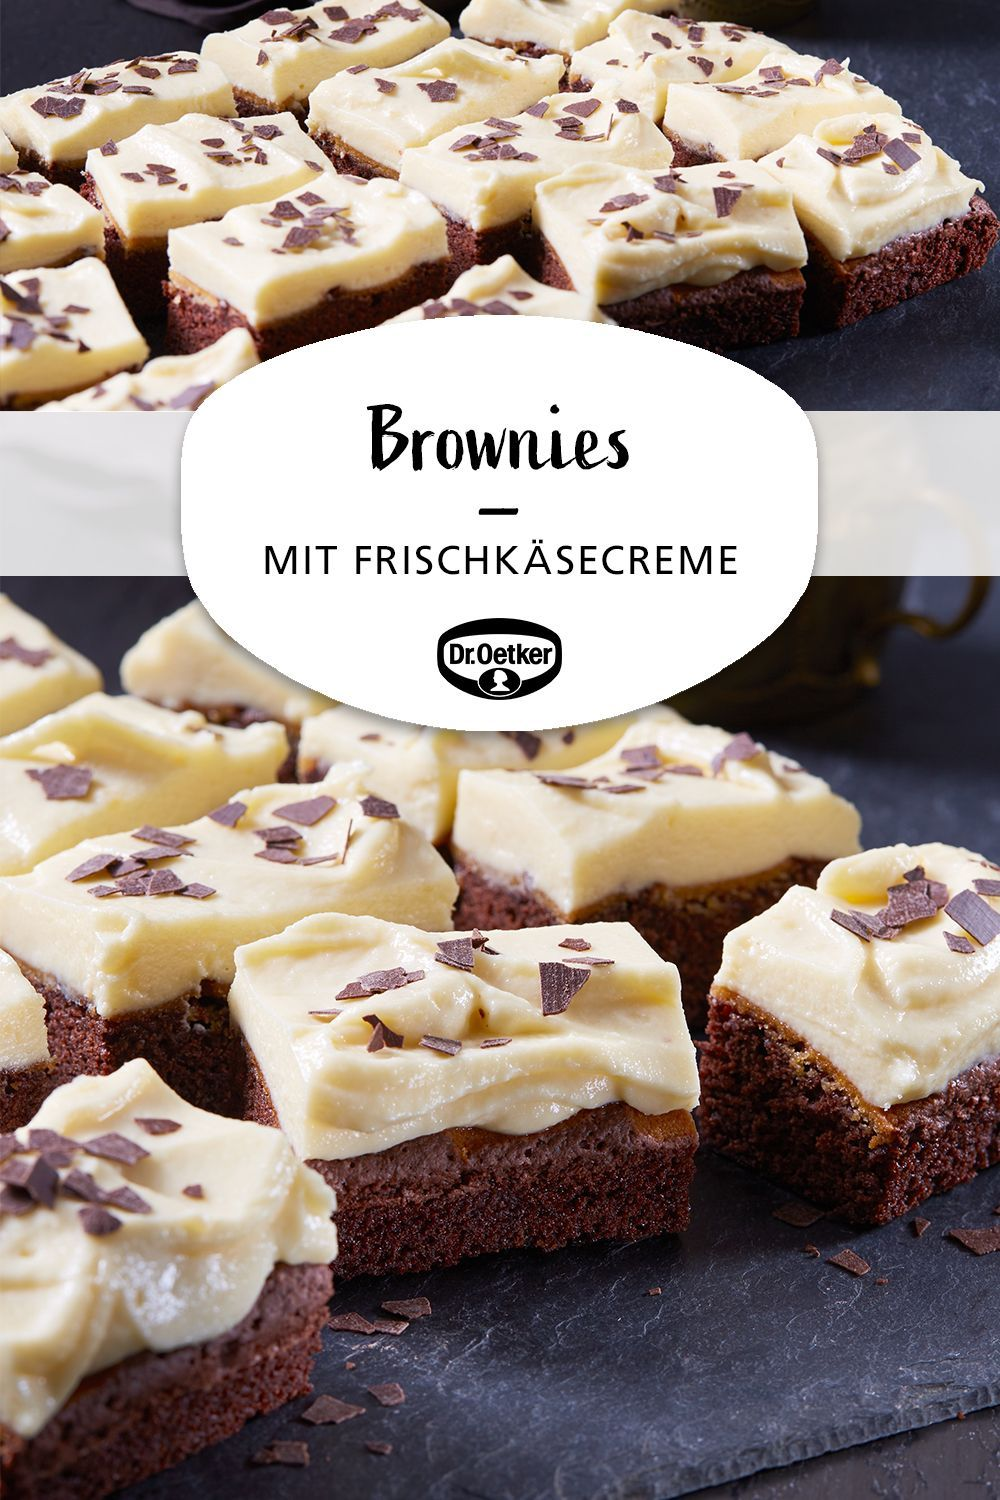 Brownies Mit Frischkasecreme Chocolatechipdip With Images Easy Coffee Recipes Coffee Recipes Cream Cheese Brownies